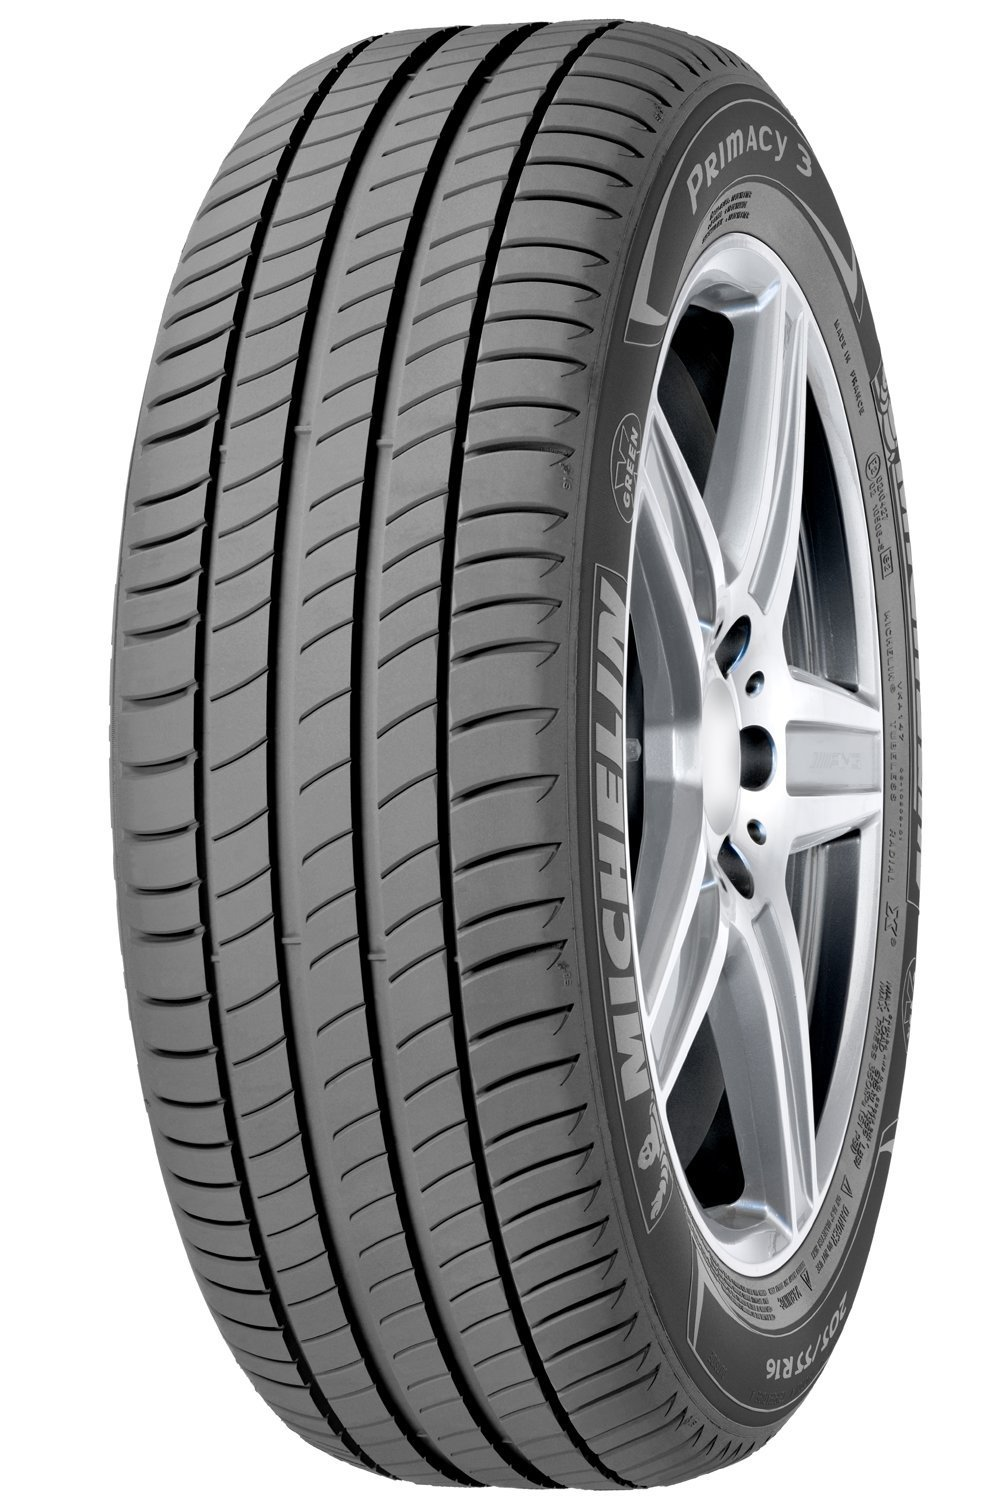 Anvelopa vara MICHELIN PRIMACY 3 * MO XL 245/45 R18 100Y